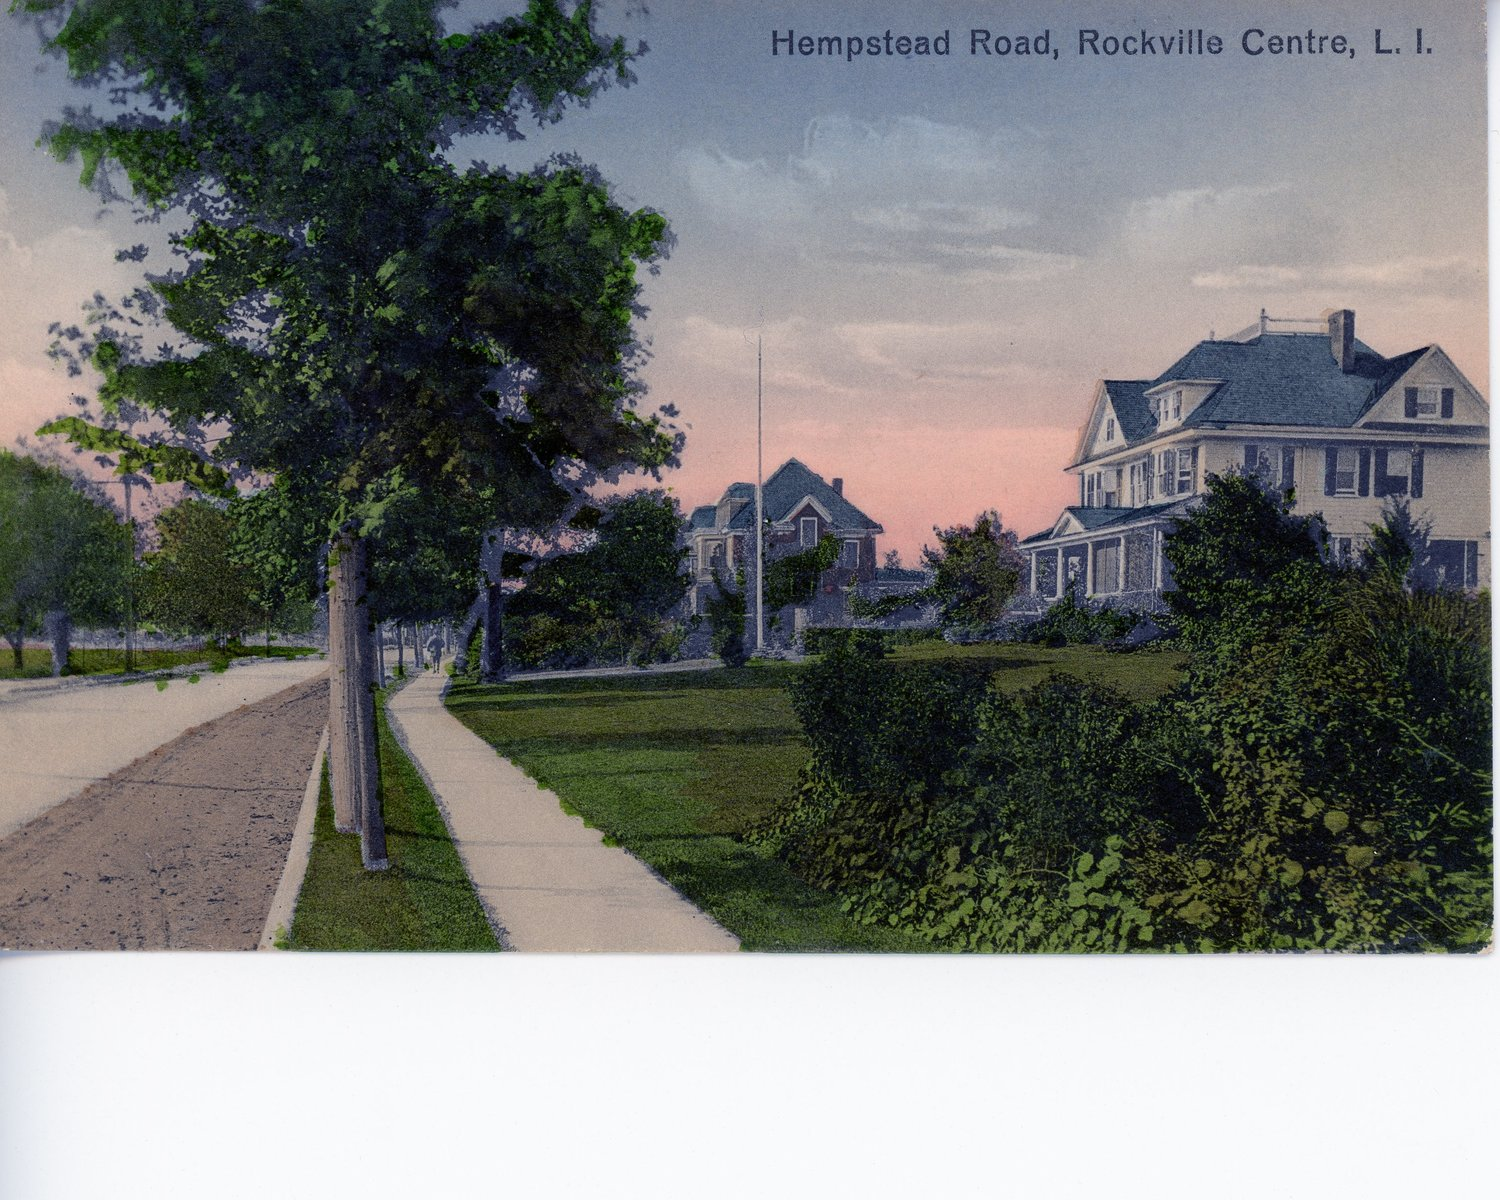 A postcard of Hempstead Road, circa 1890.